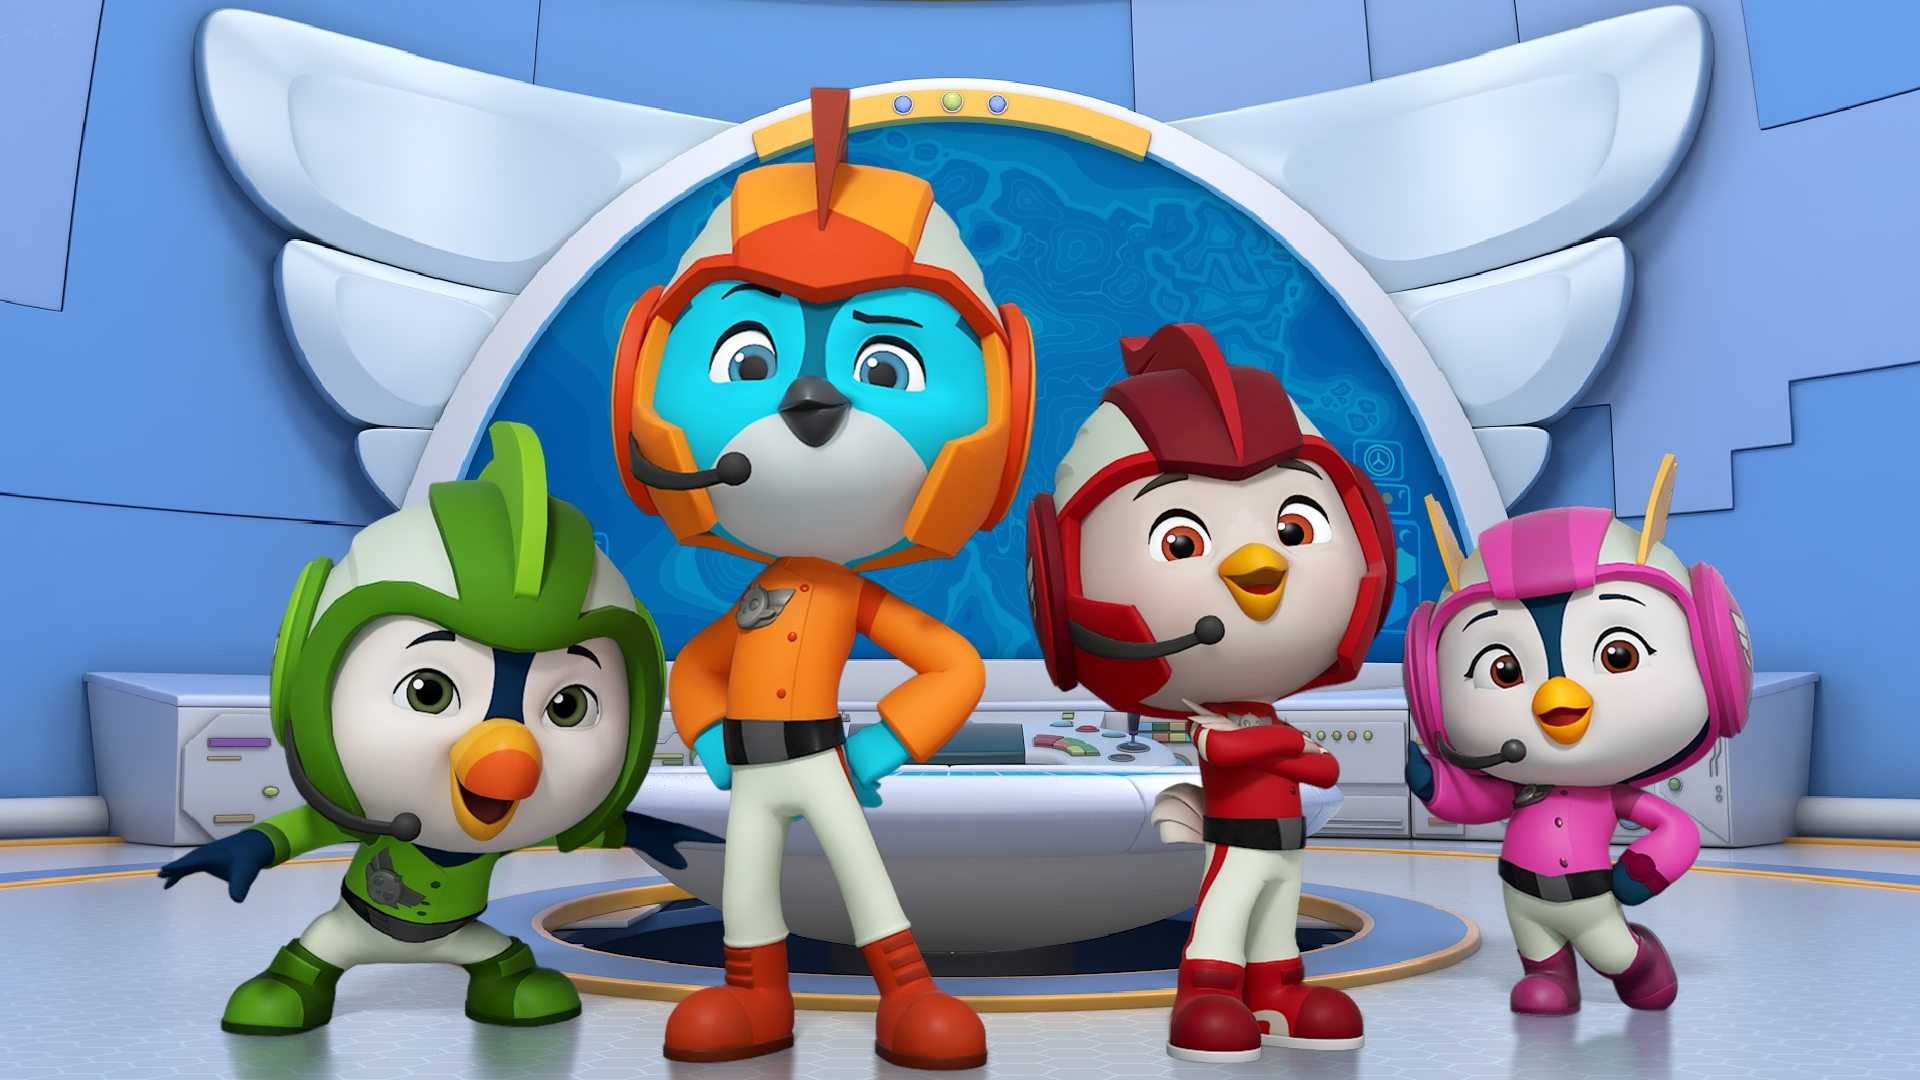 New Adventures Take Flight in Nickelodeon's Brand-New CG